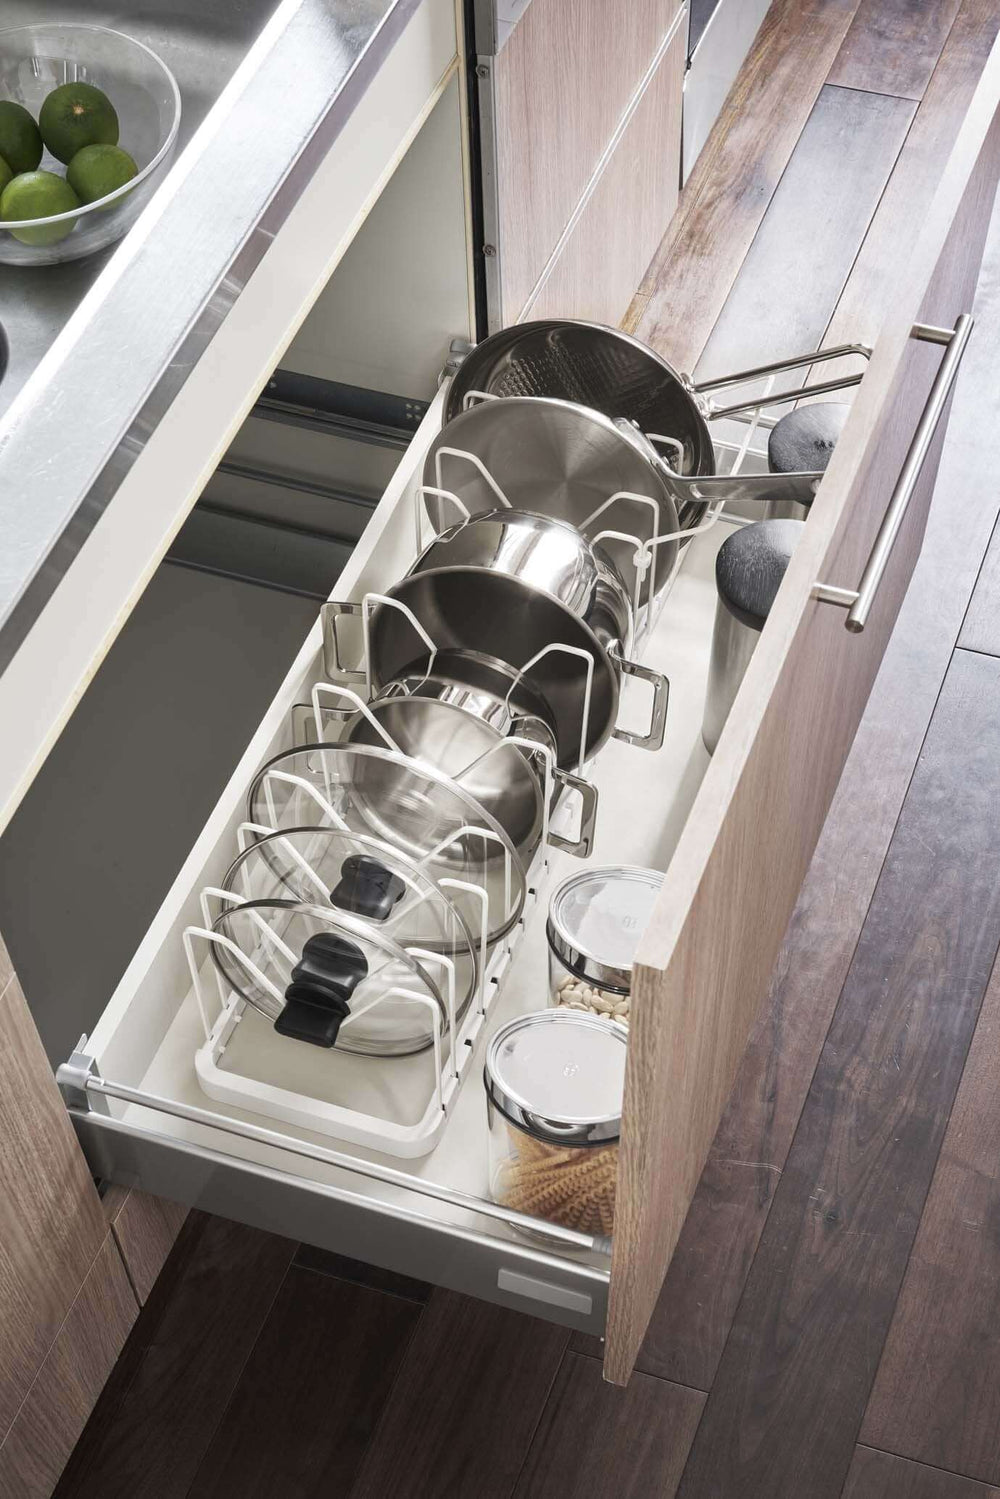 View of the white lid and pan organizer expanded to fill the width of the large drawer and holding more objects